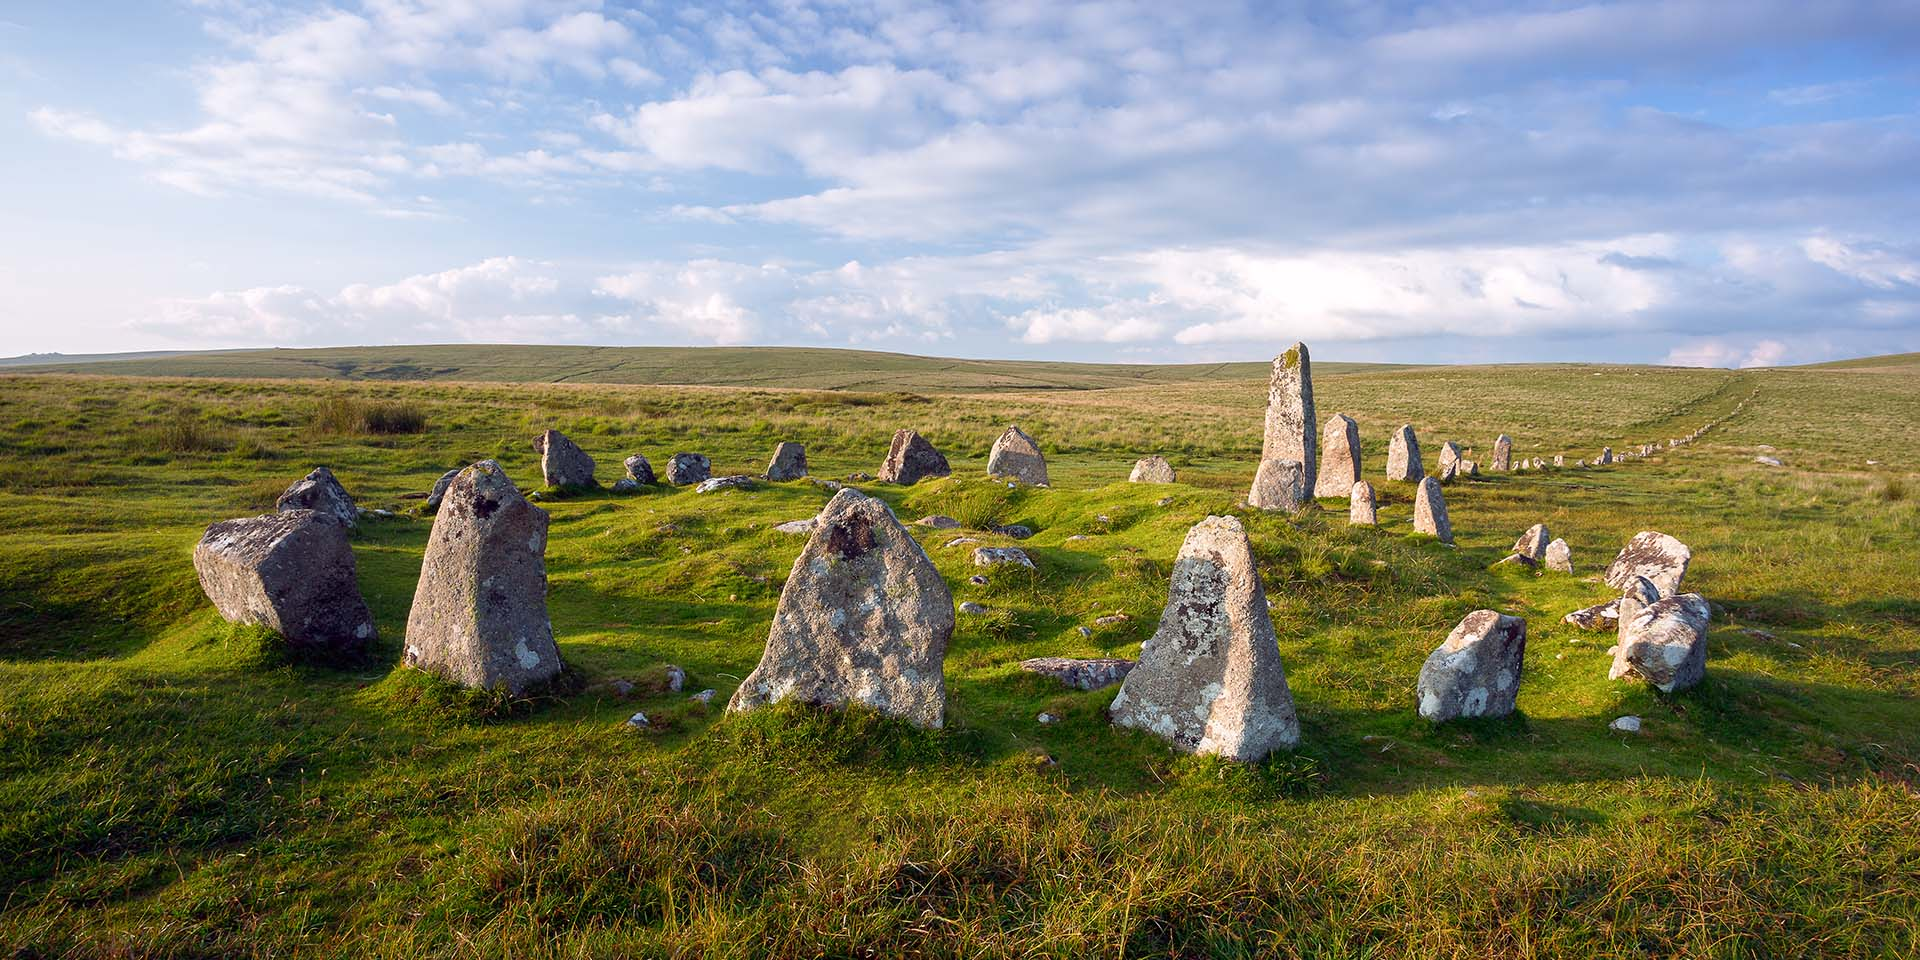 Down Tor stone row and circle by Anna Curnow